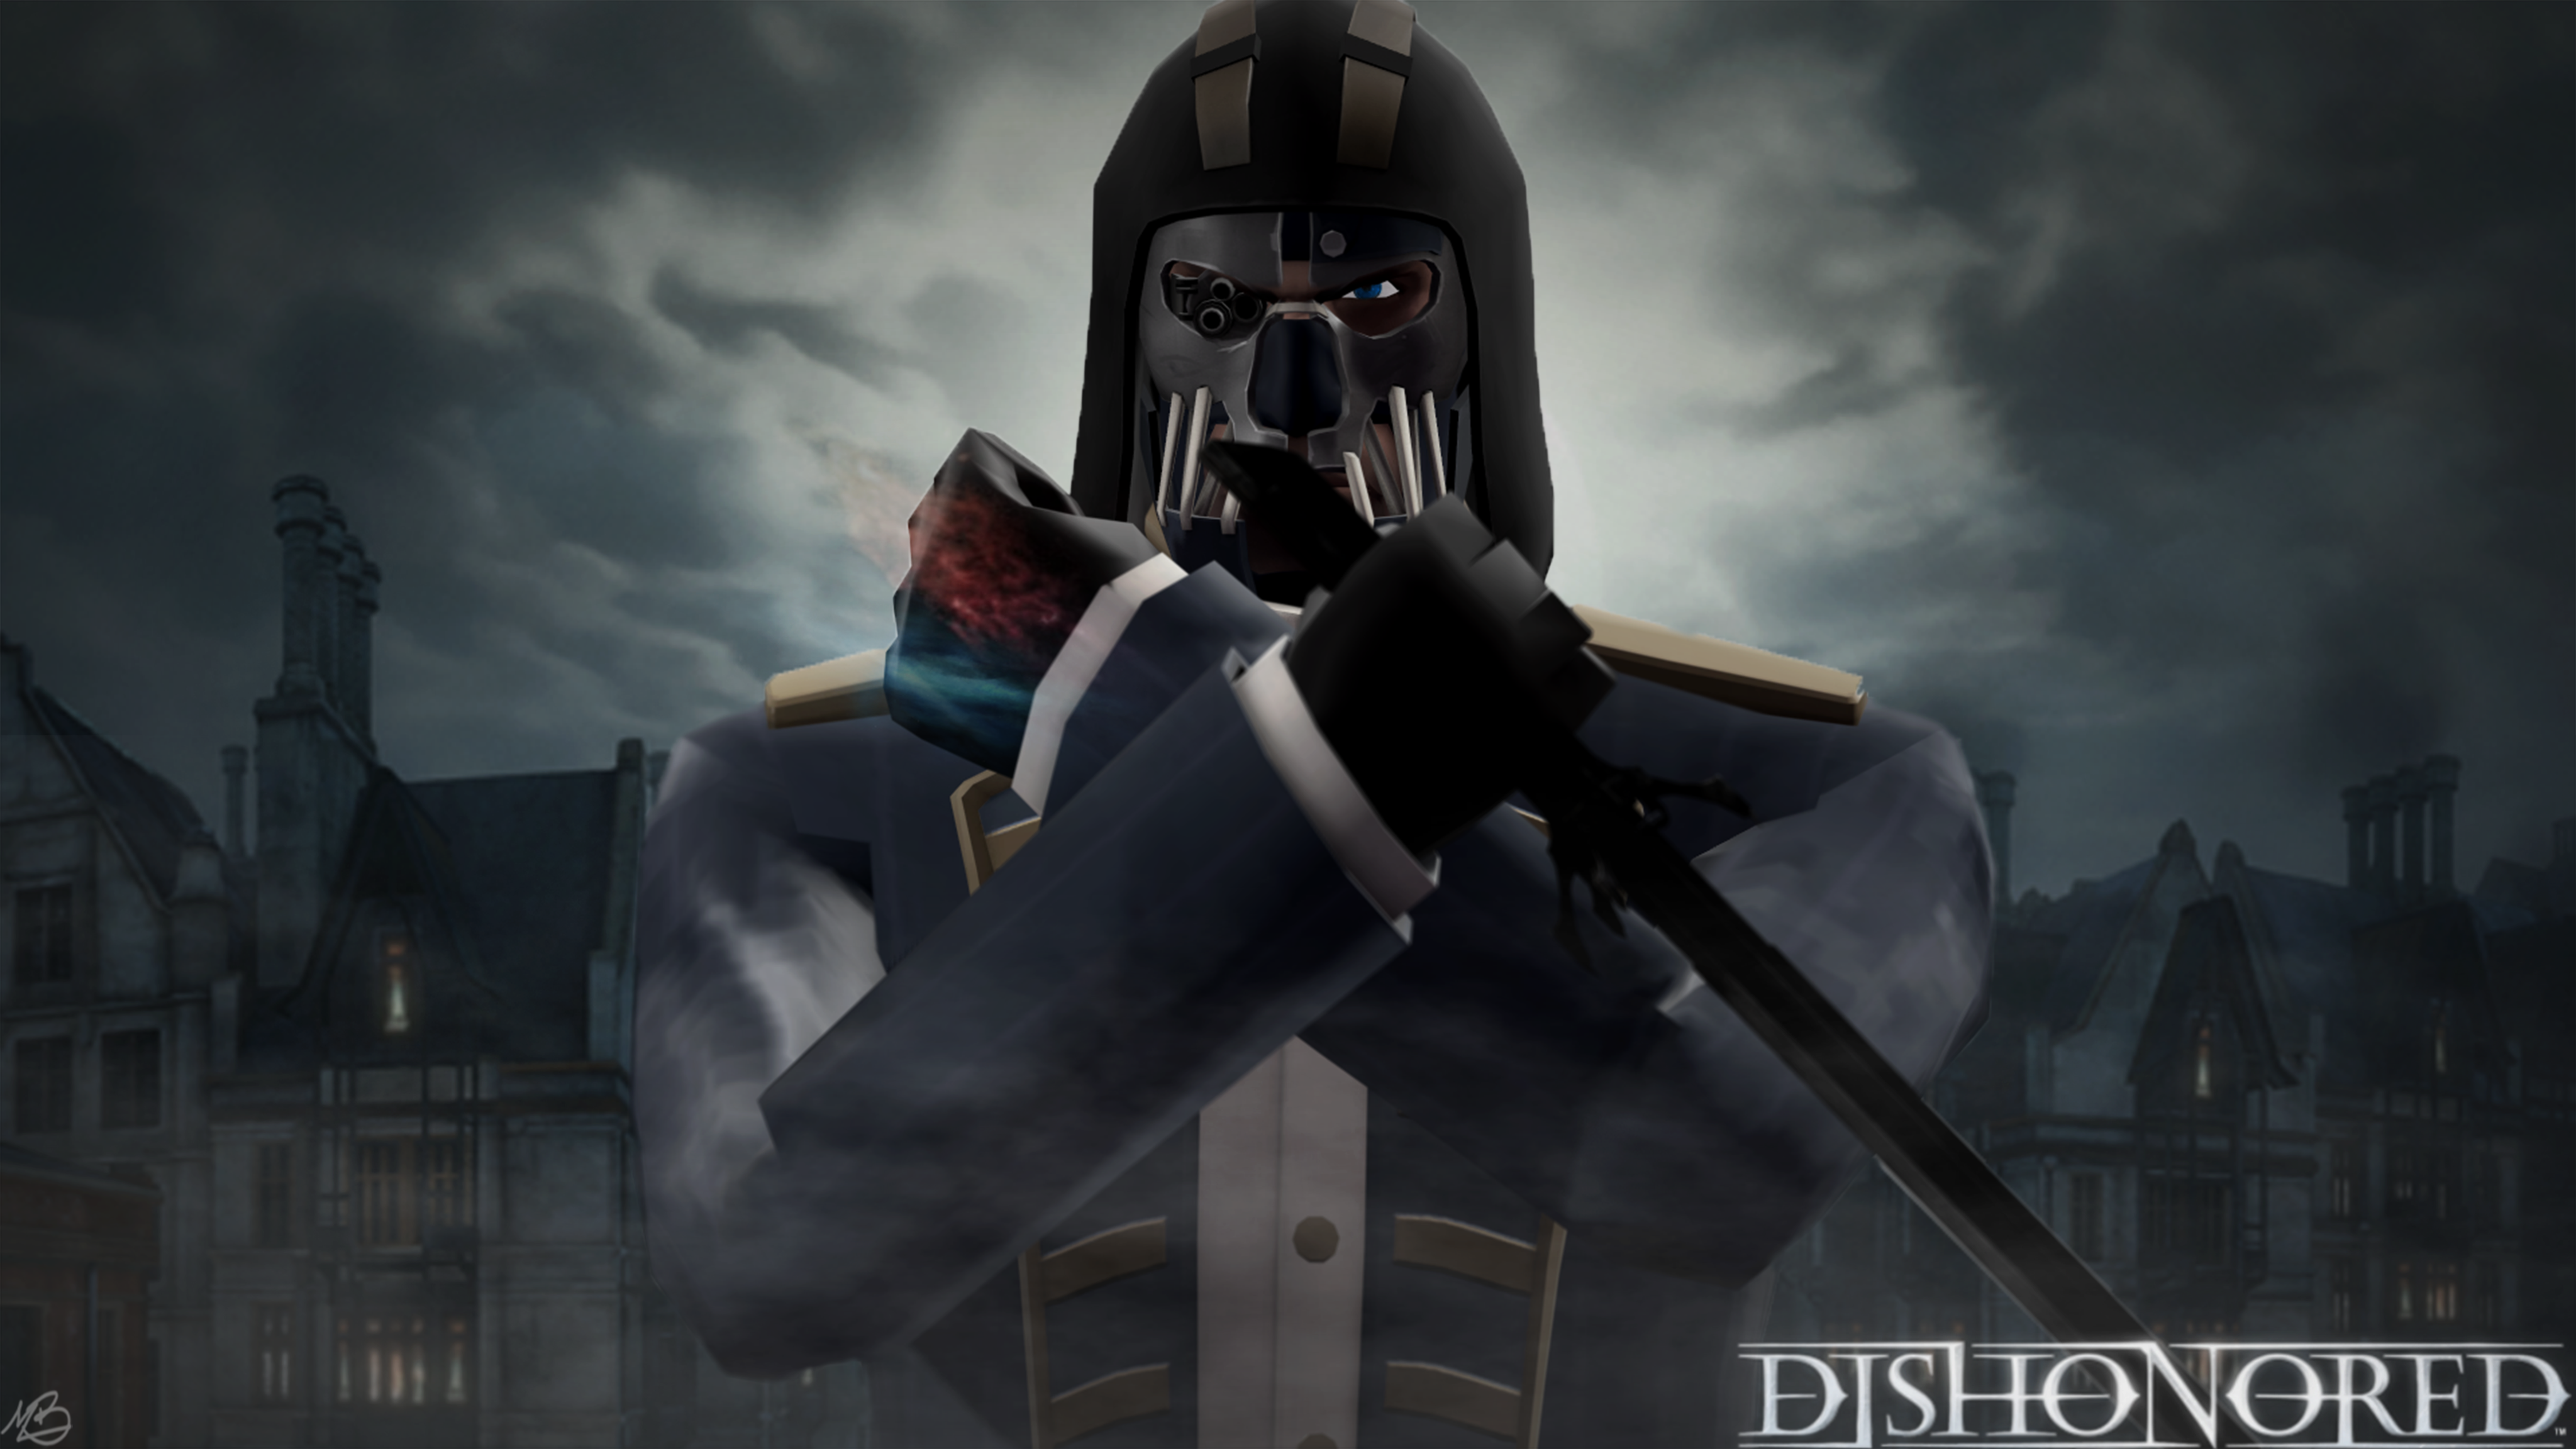 dishonored wallpaper - hd wallpapers images